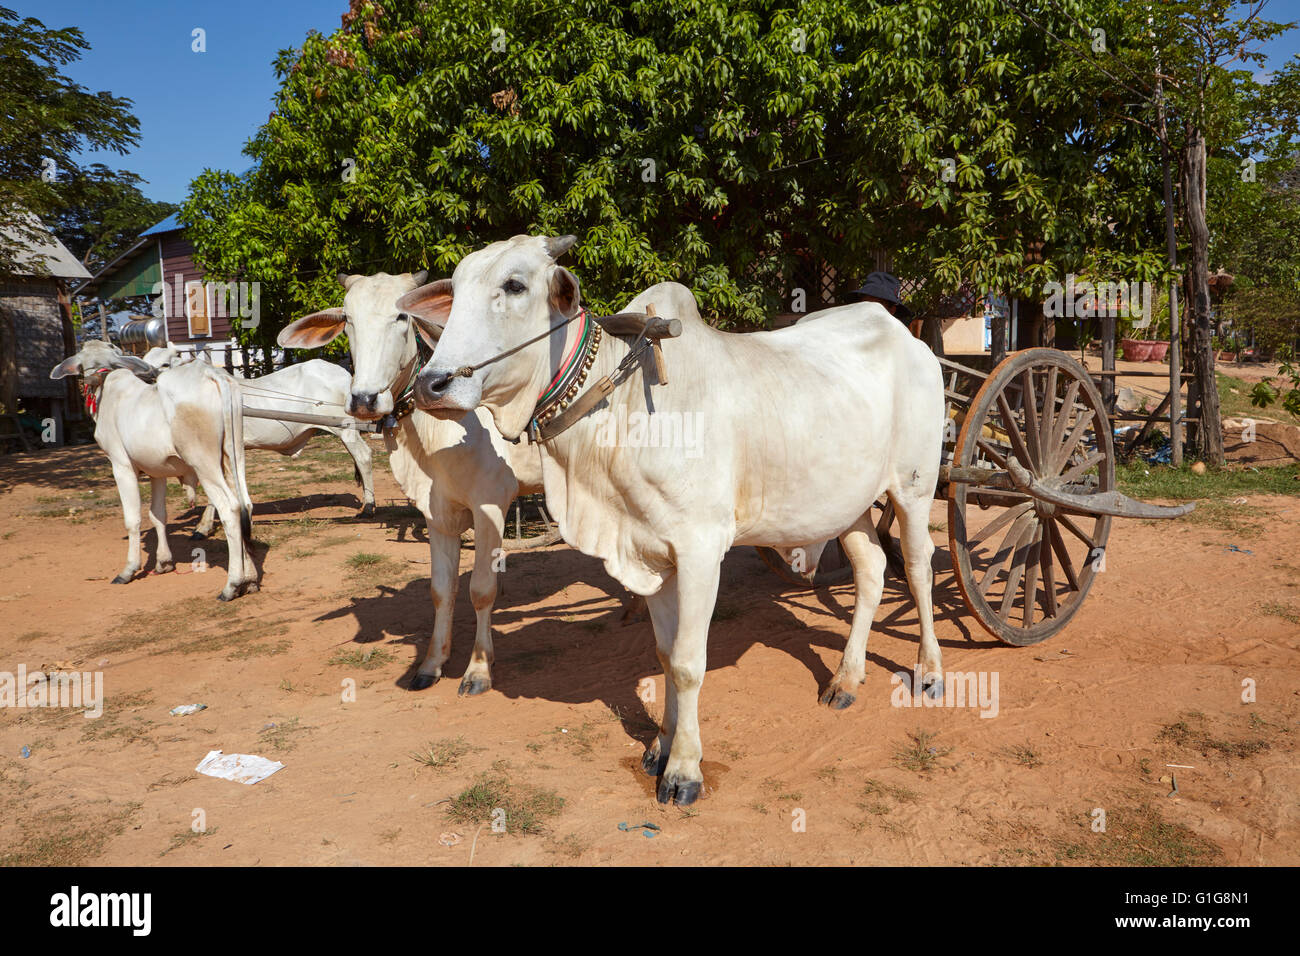 Cows sheperd in the countryside of Cambodia - Stock Image